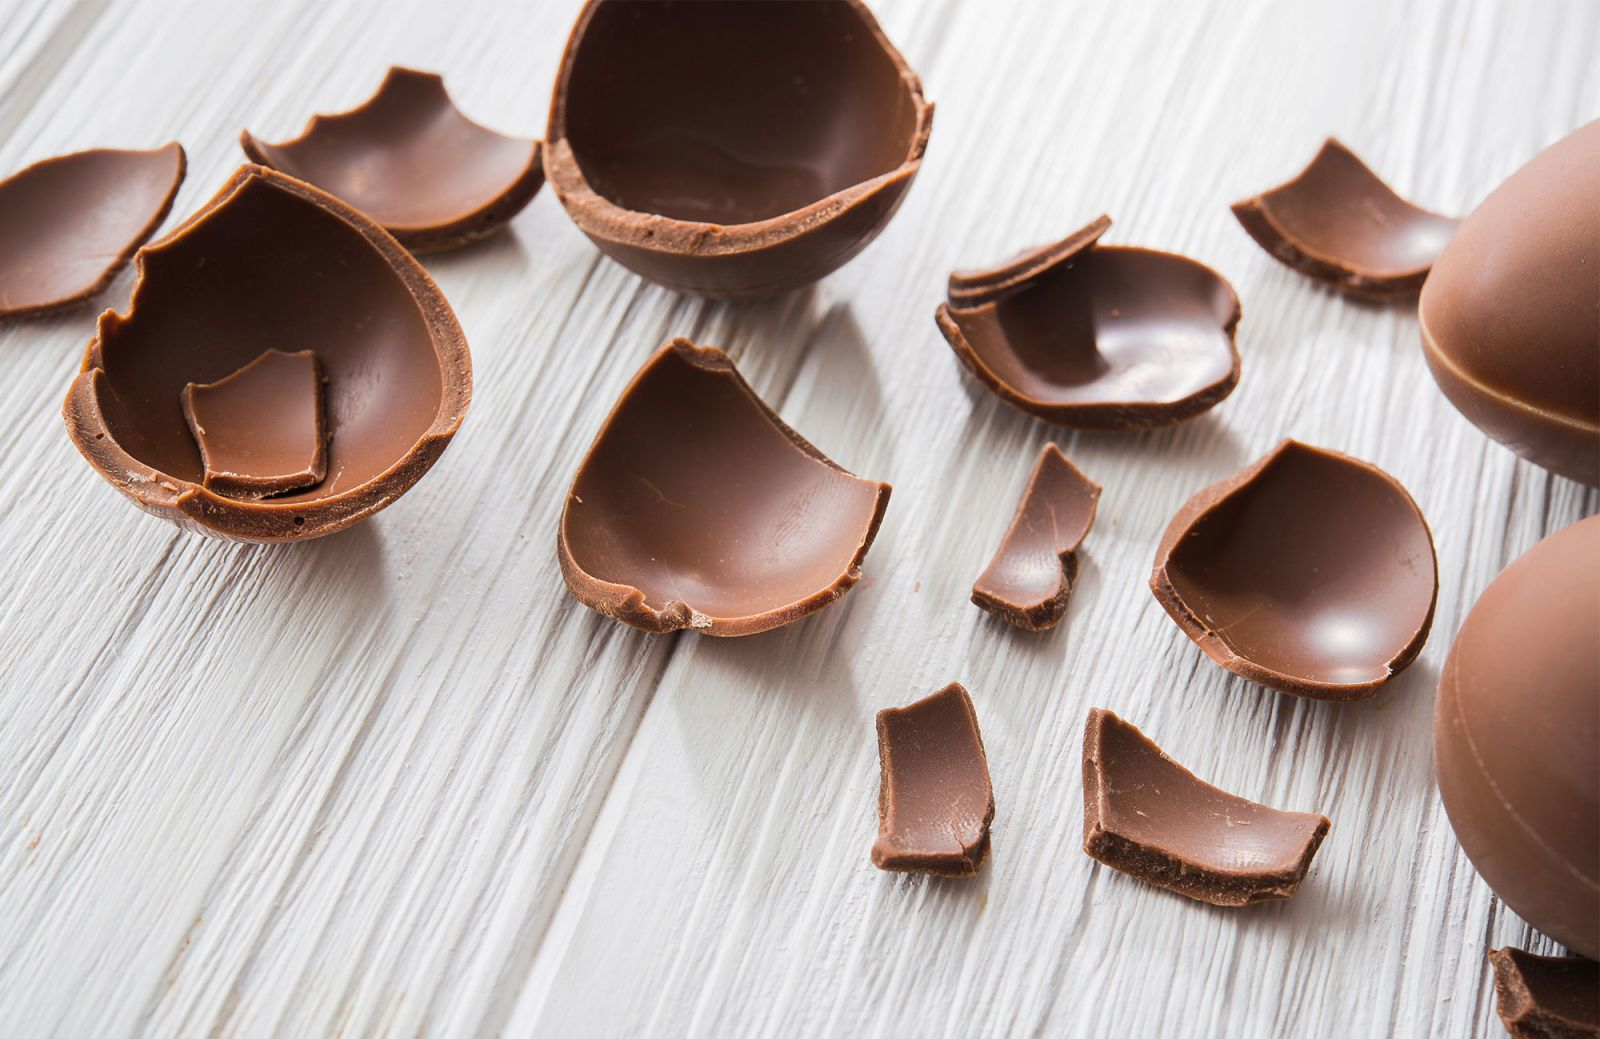 This is officially the best way to open an Easter egg, says chocolatier